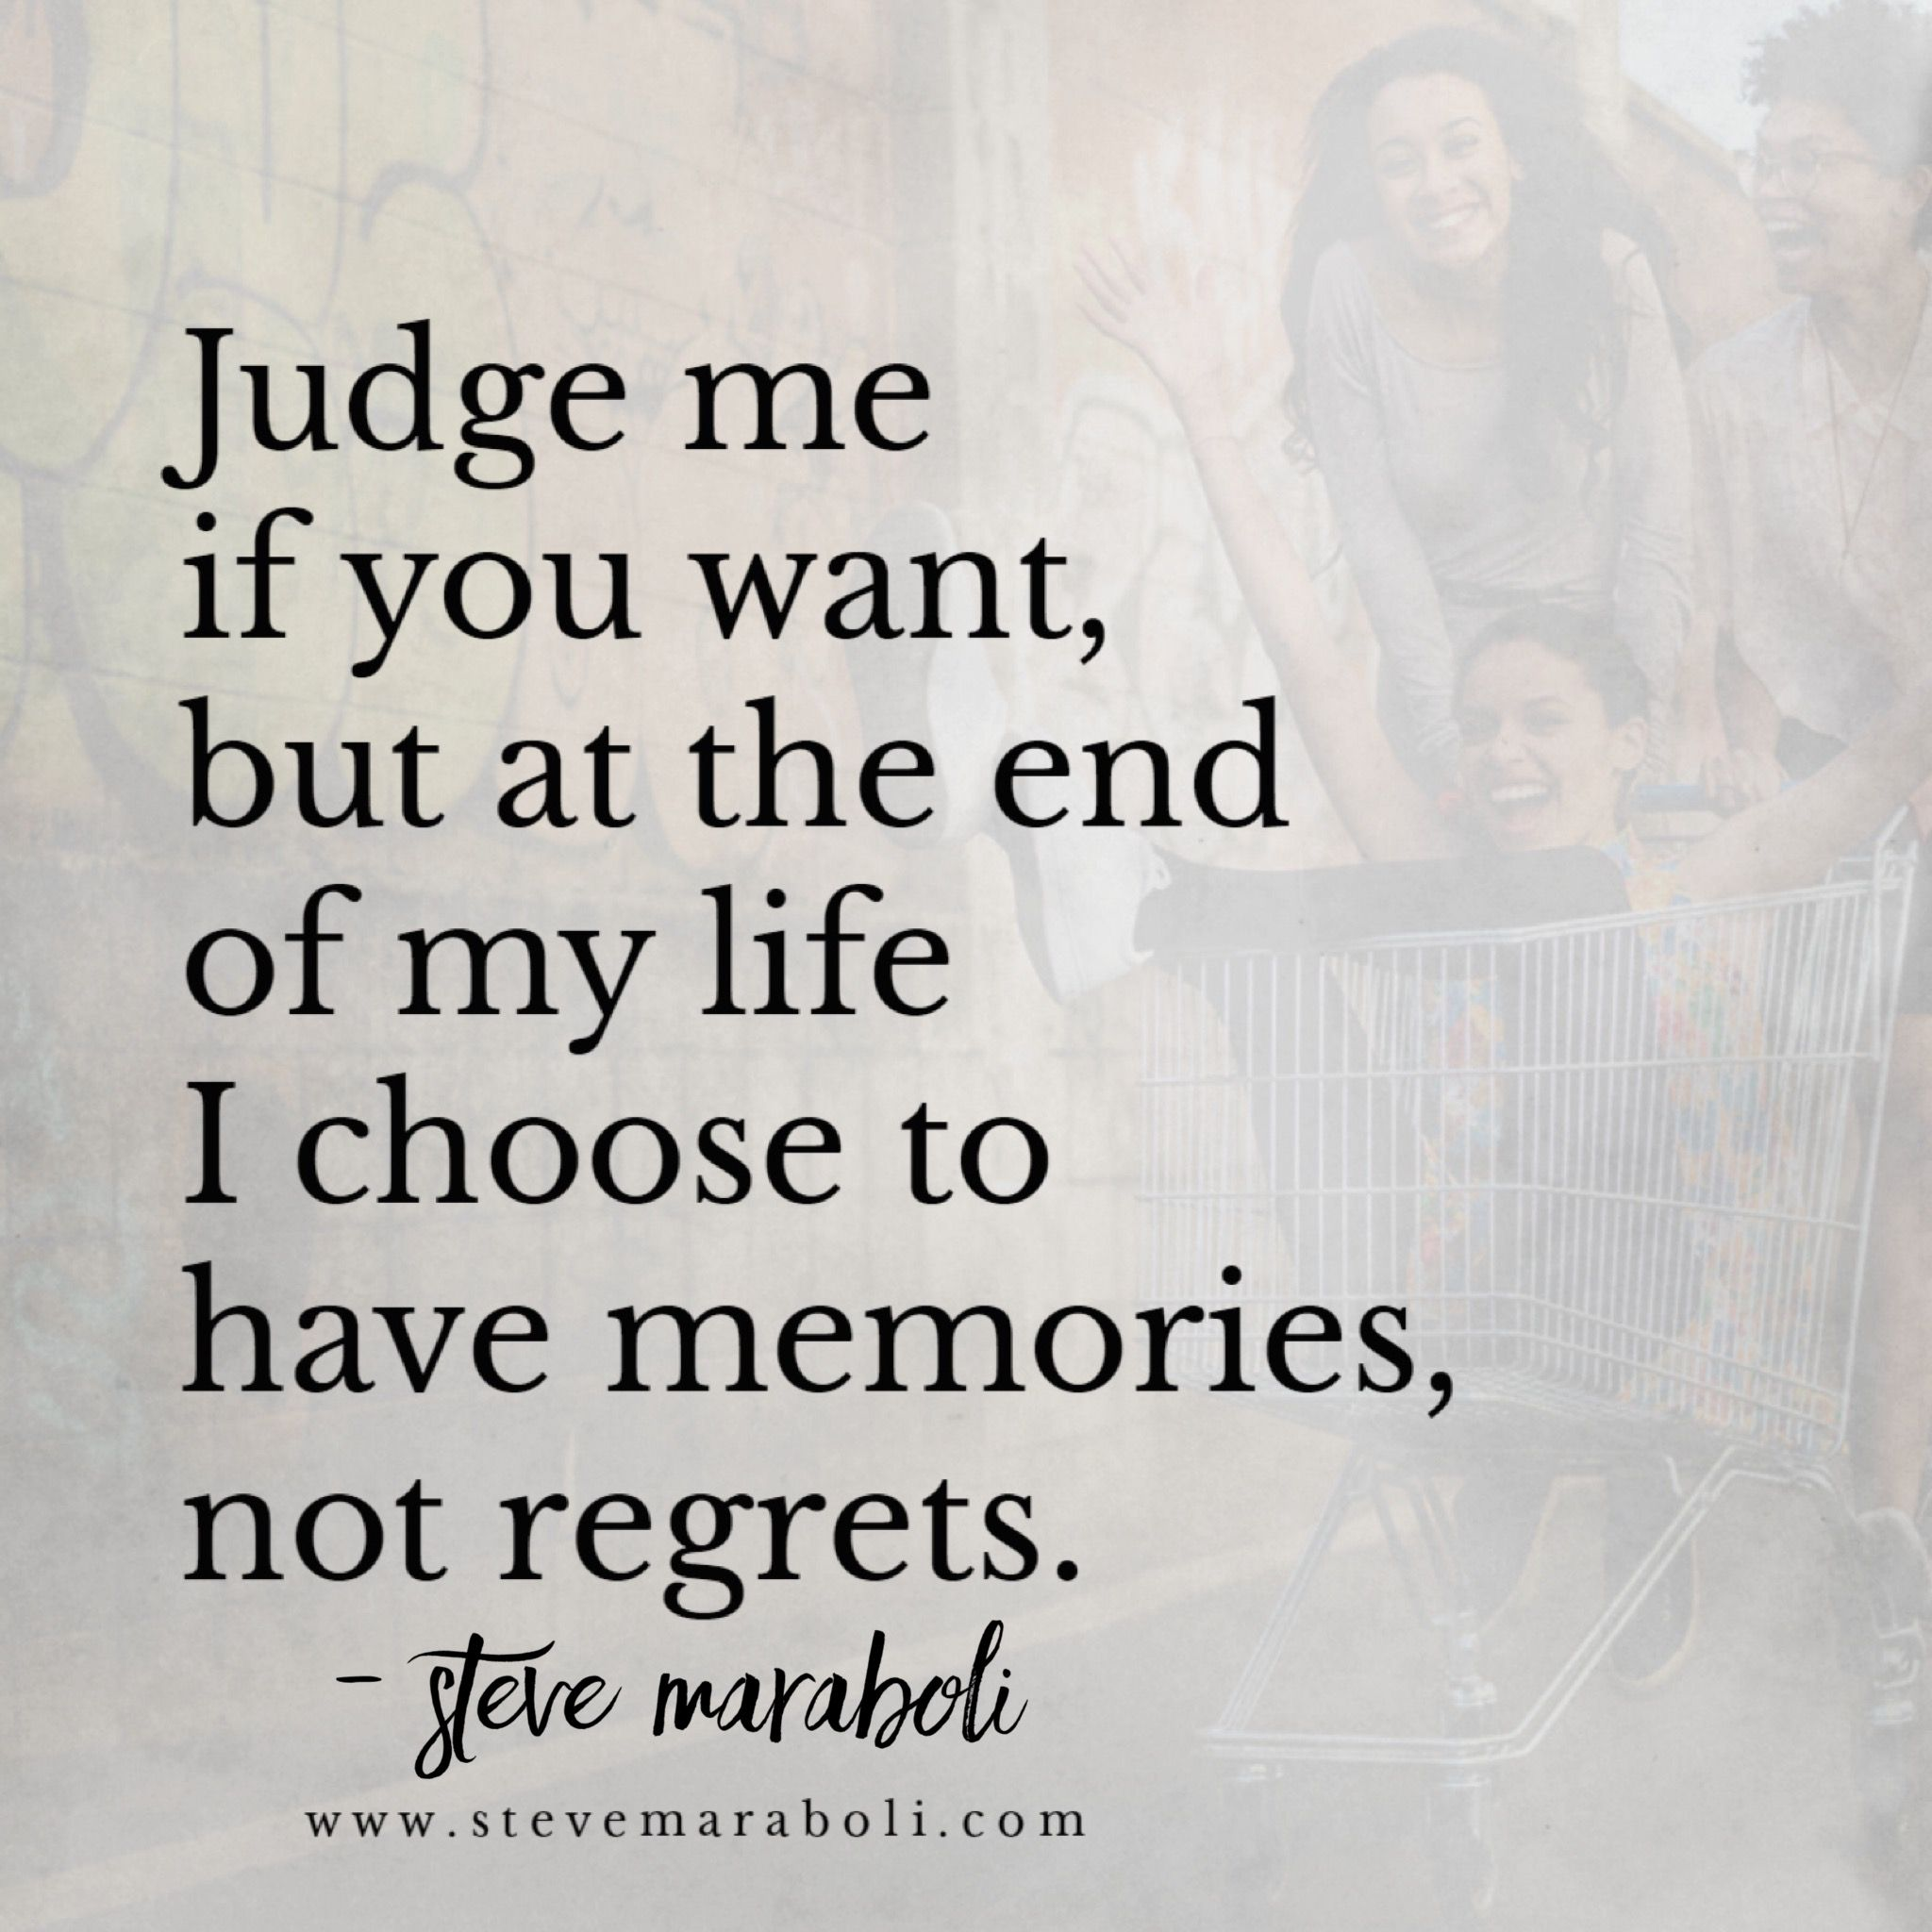 Judge Me If You Want But At The End Of My Life I Choose To Have